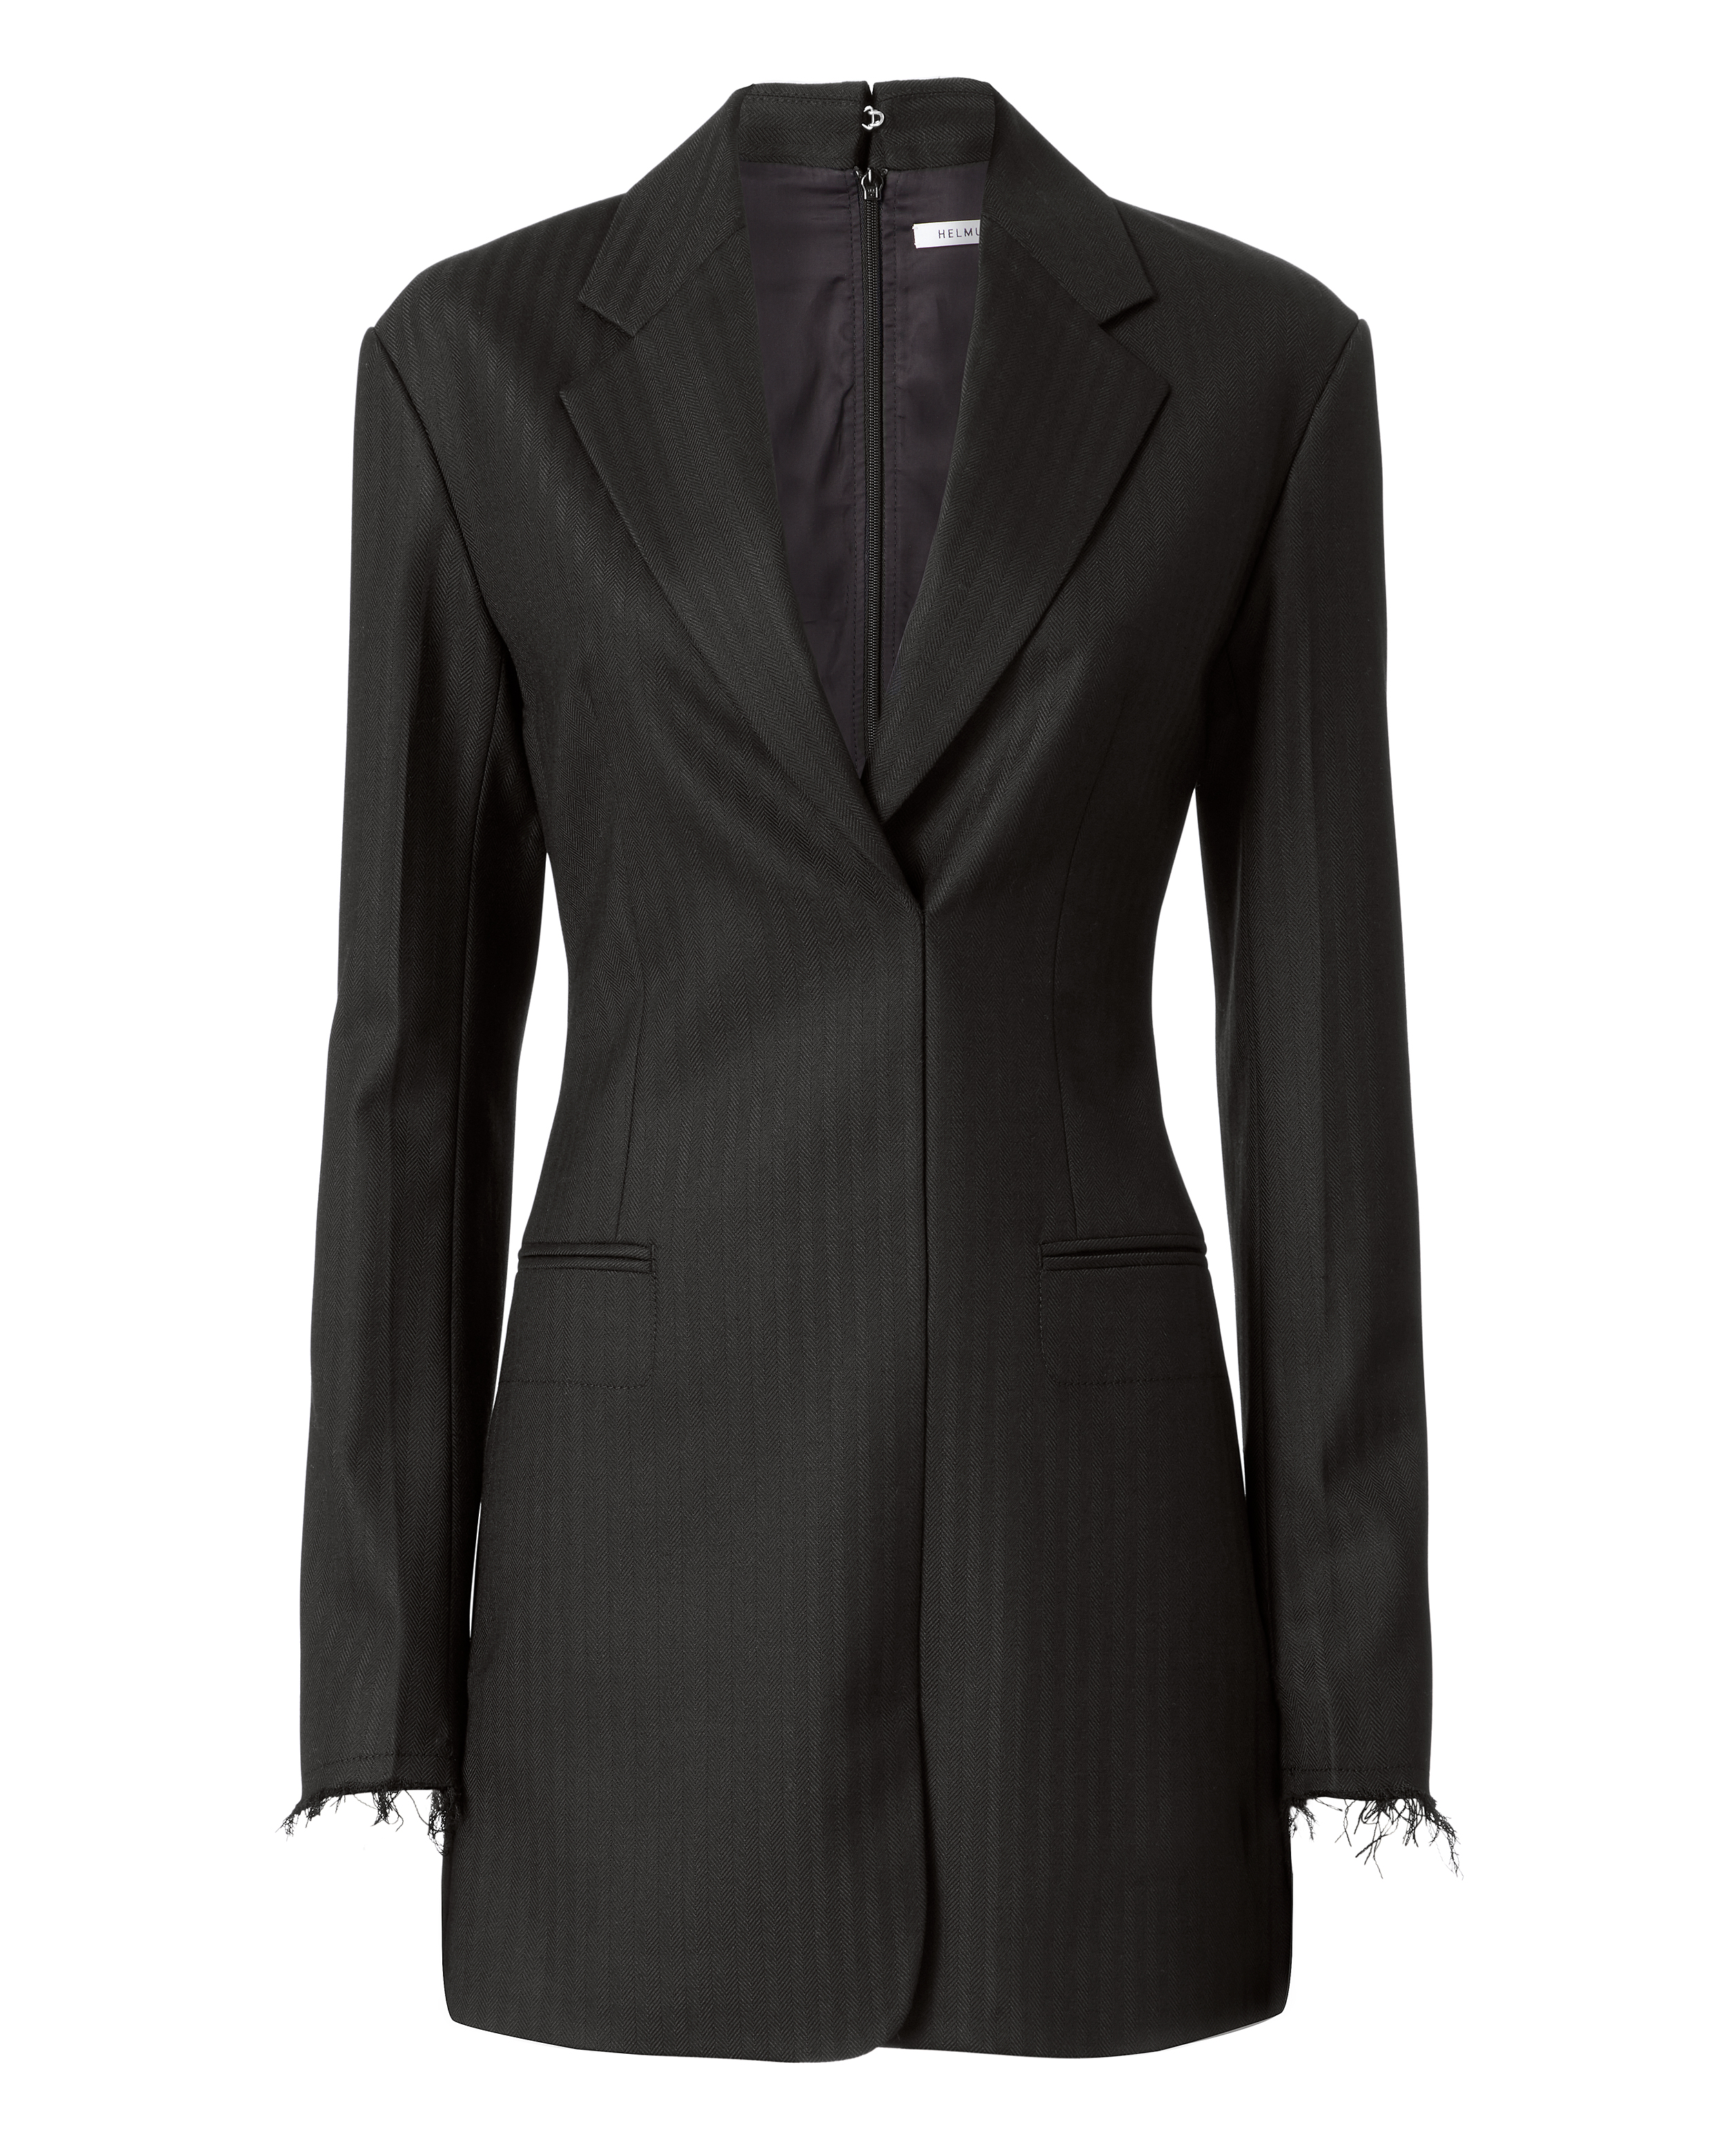 Herringbone Blazer Dress by Helmut Lang